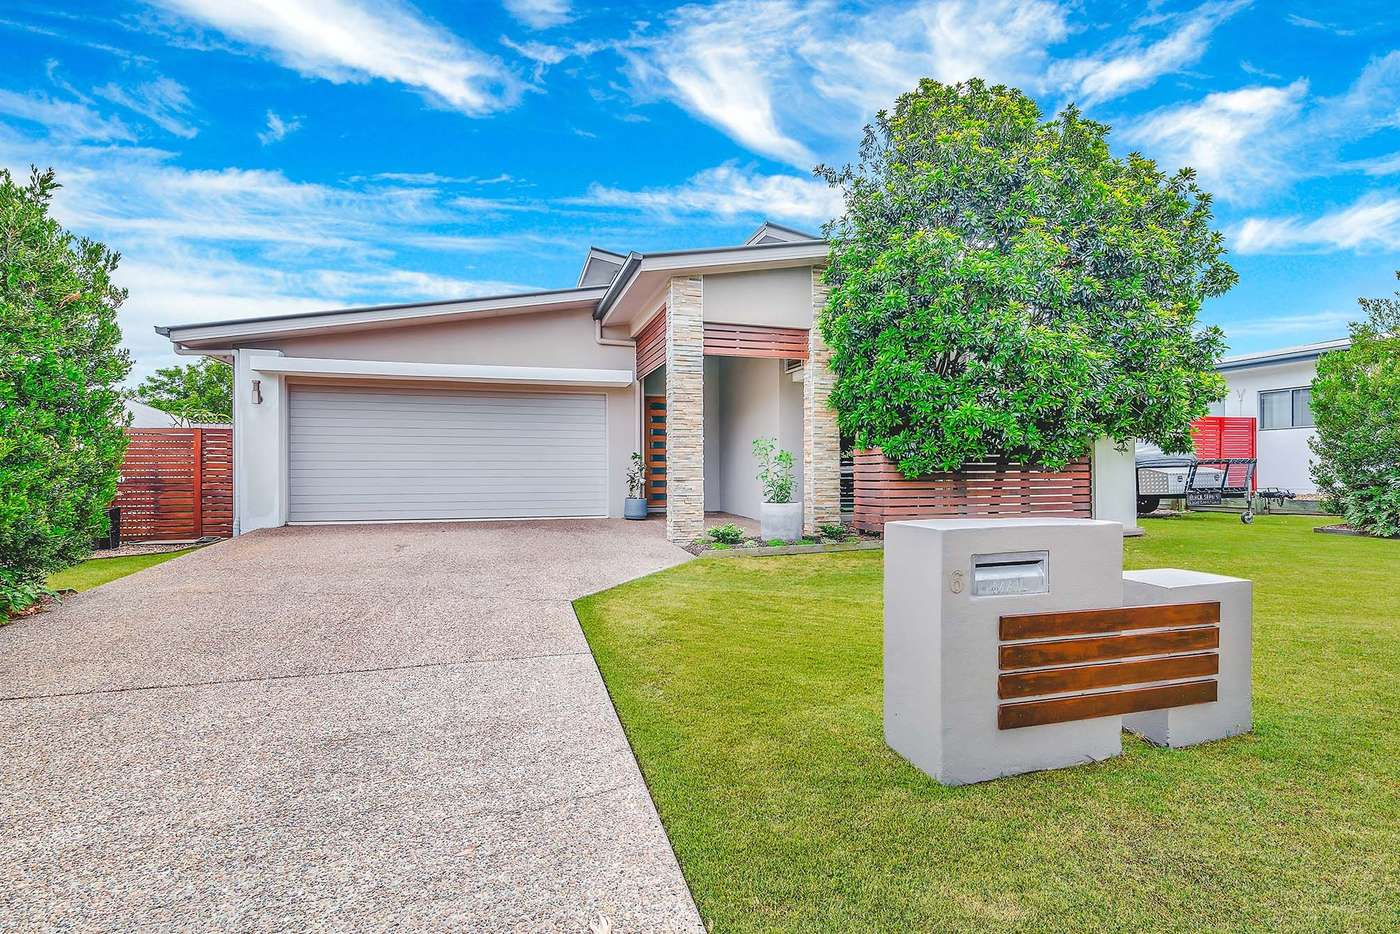 Main view of Homely house listing, 6 Blackall Street, Coomera QLD 4209